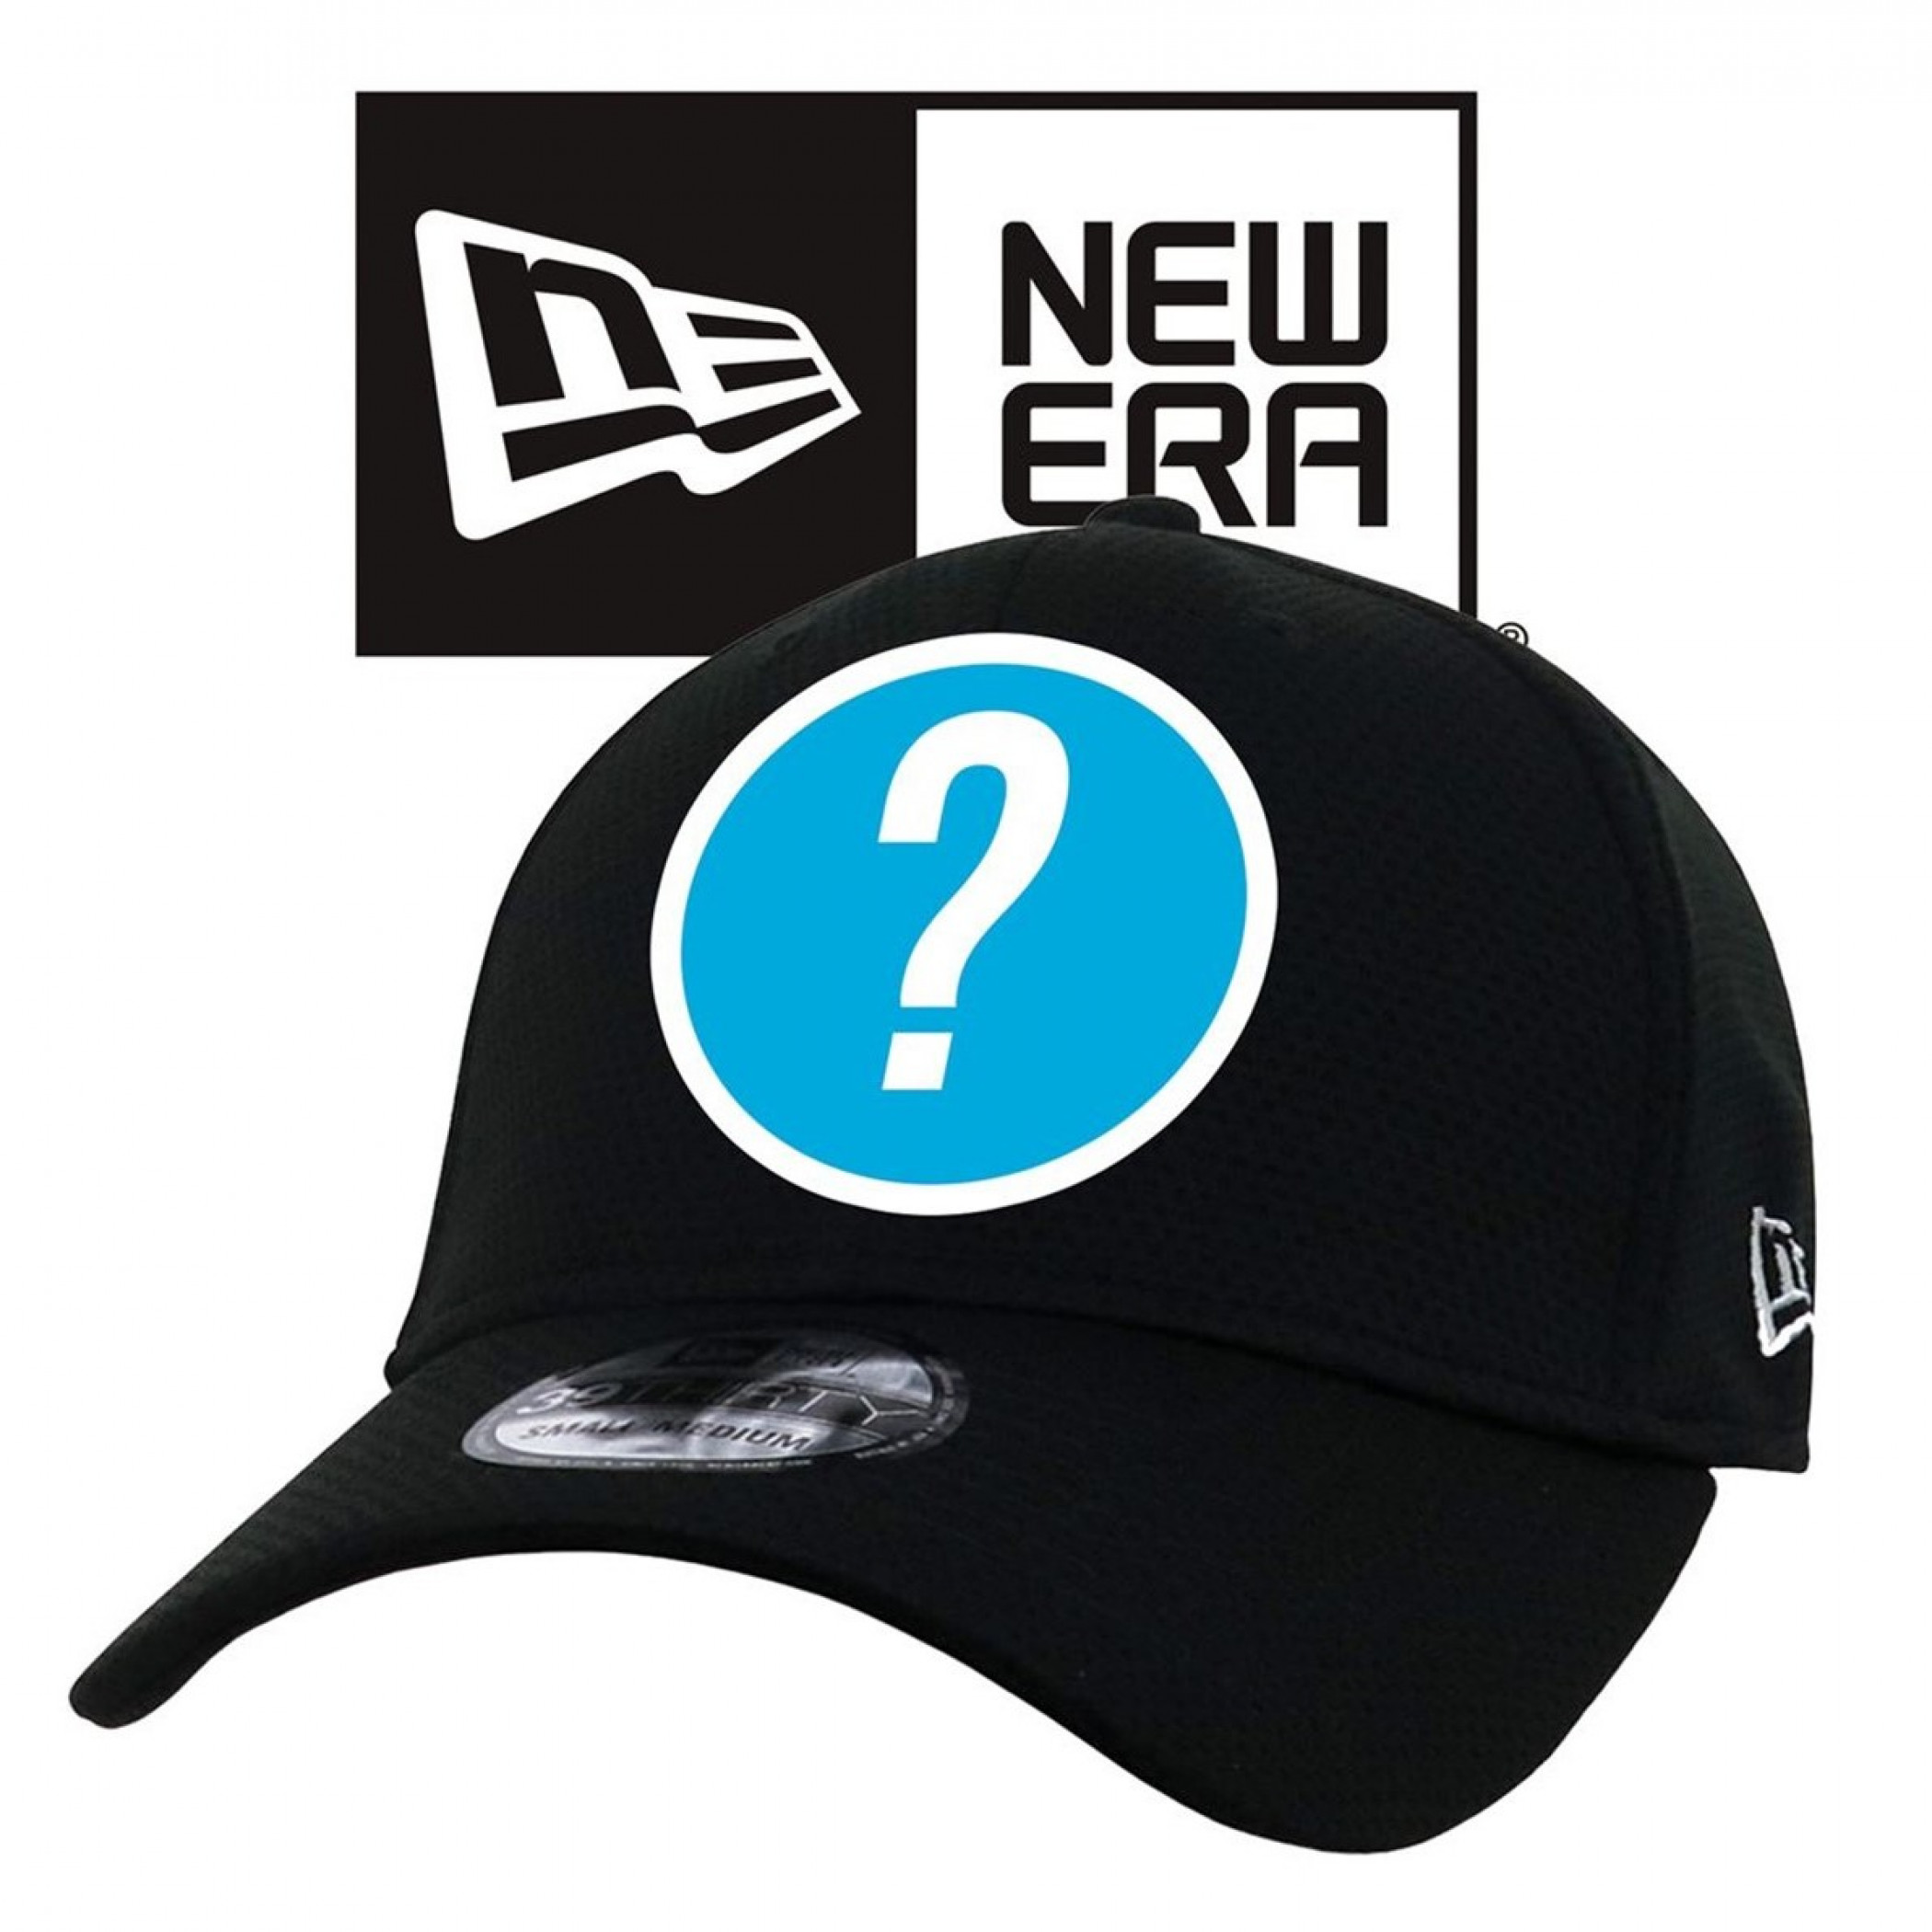 New Era Mystery 9Twenty Adjustable Hat